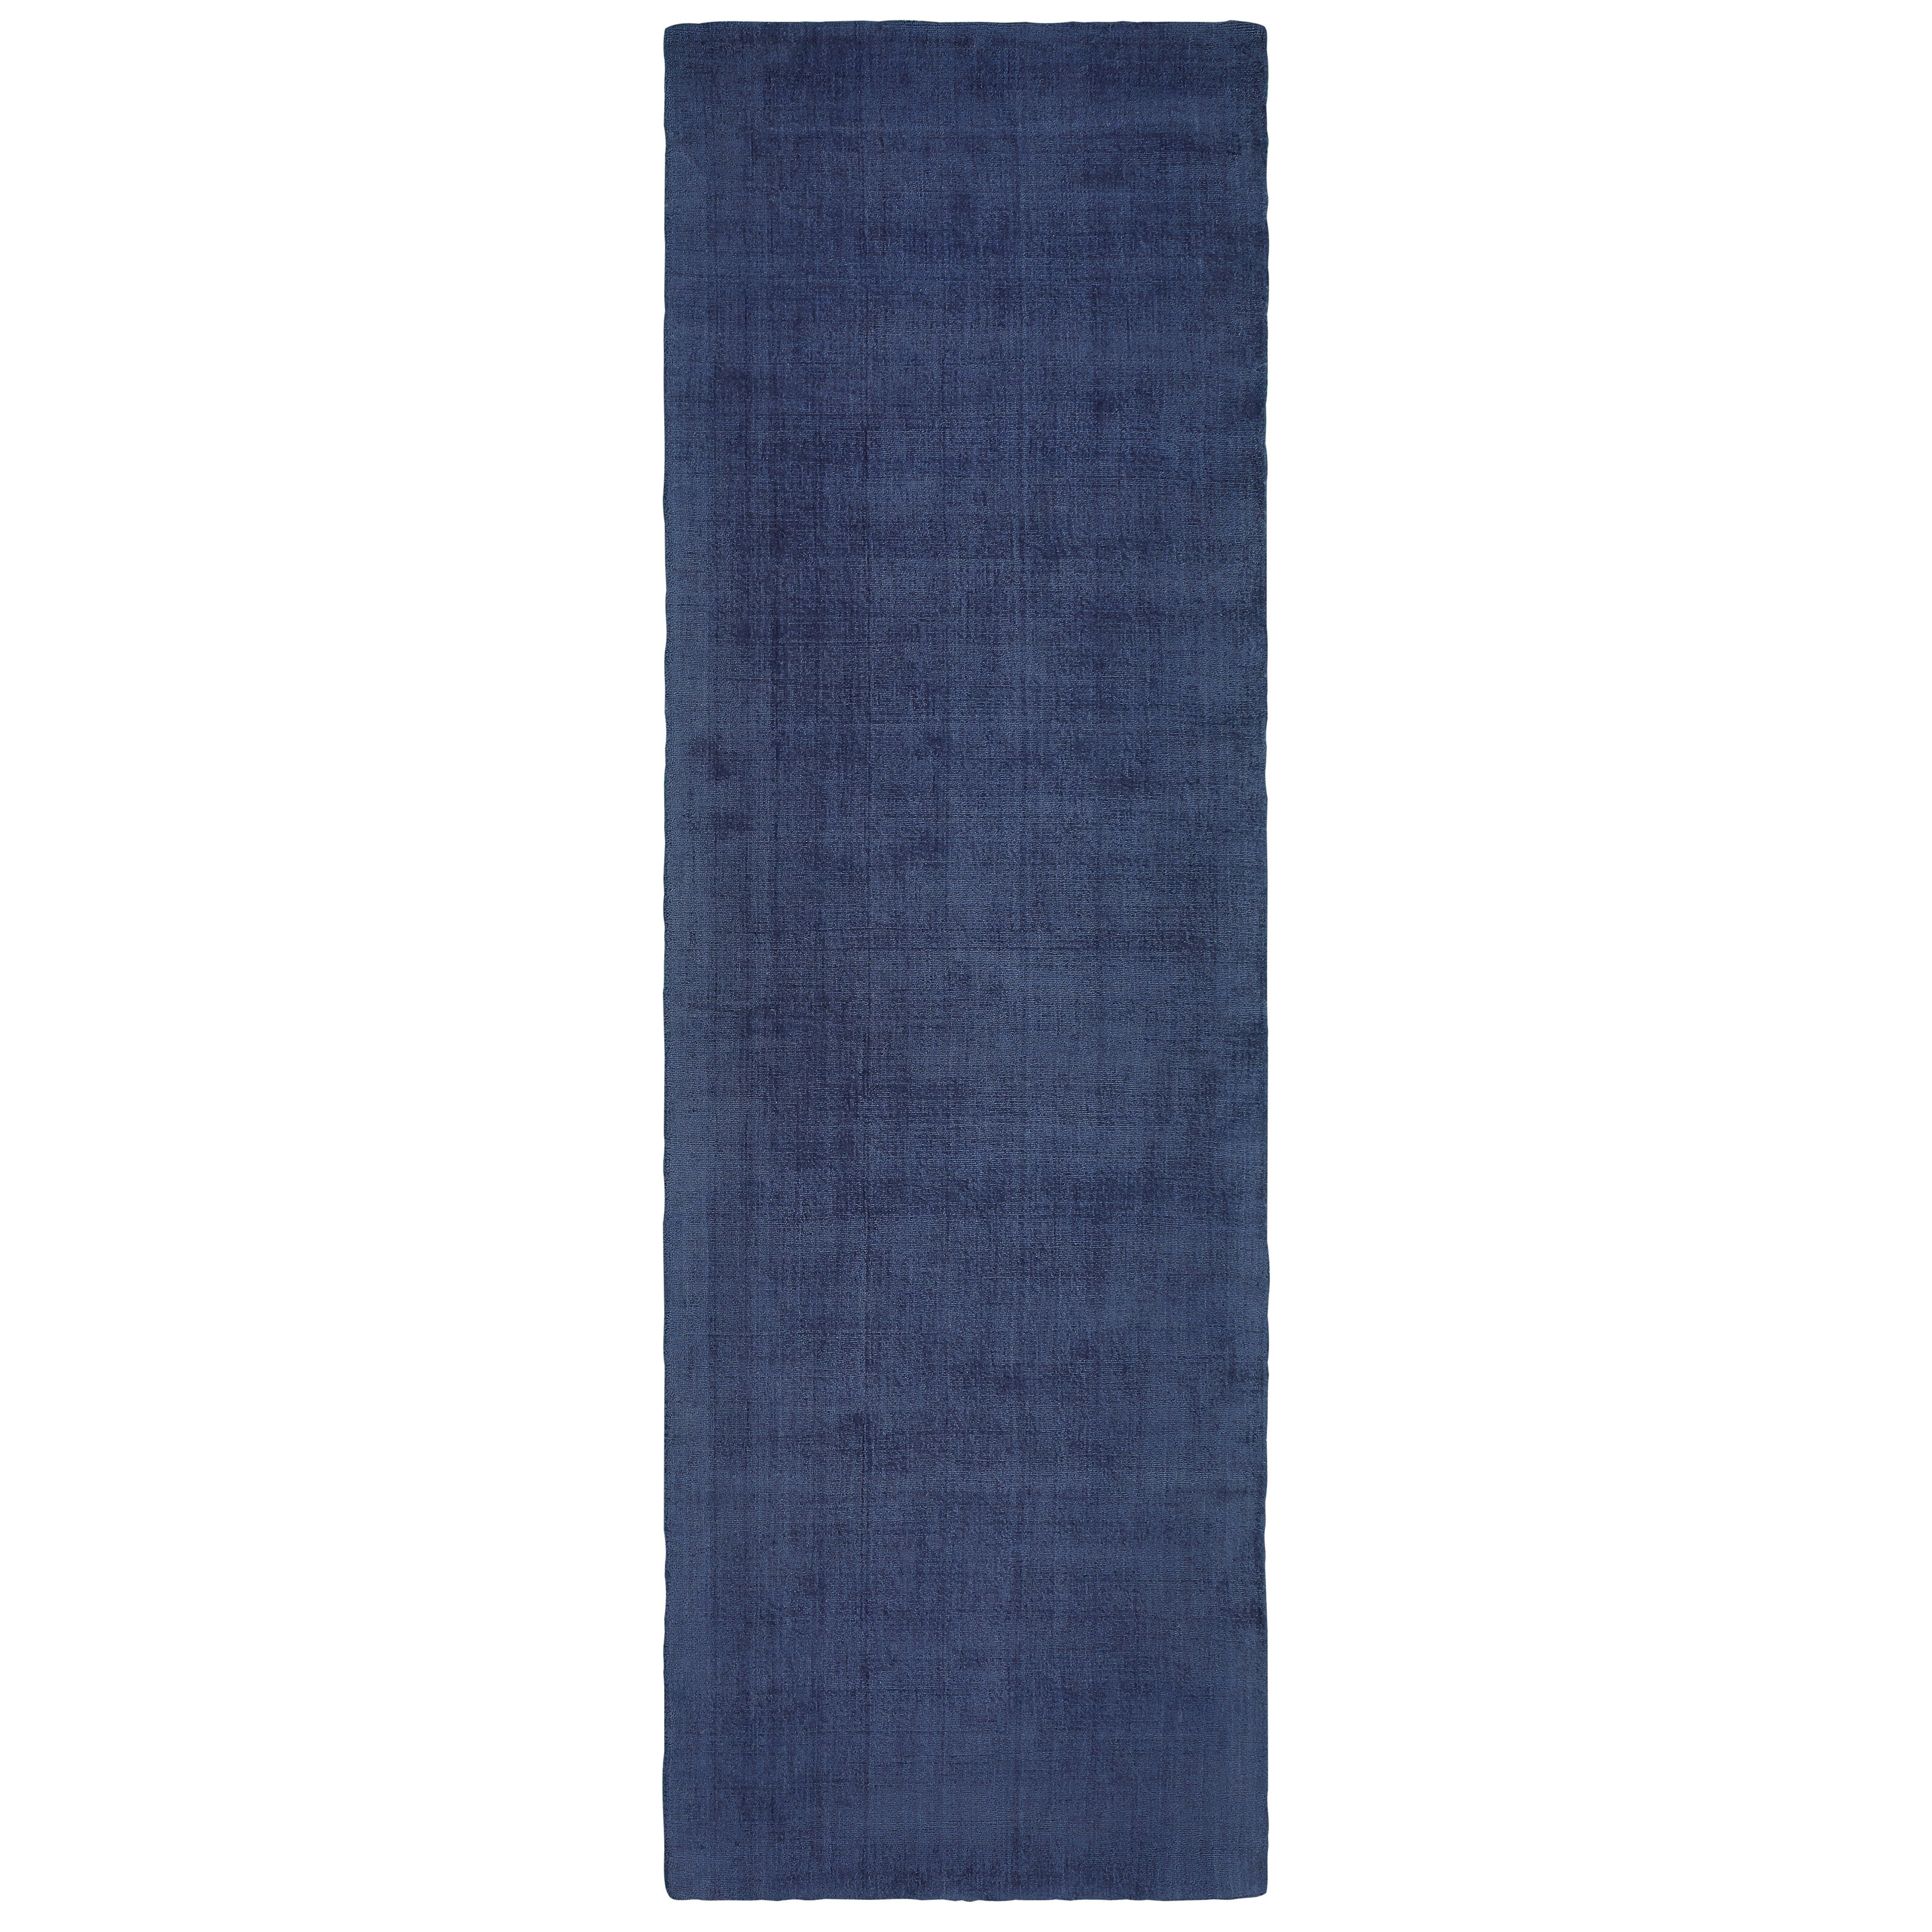 Bronx Blue Bedroom Project: Ivy Bronx Babbitt Casual Hand-Tufted Blue Area Rug